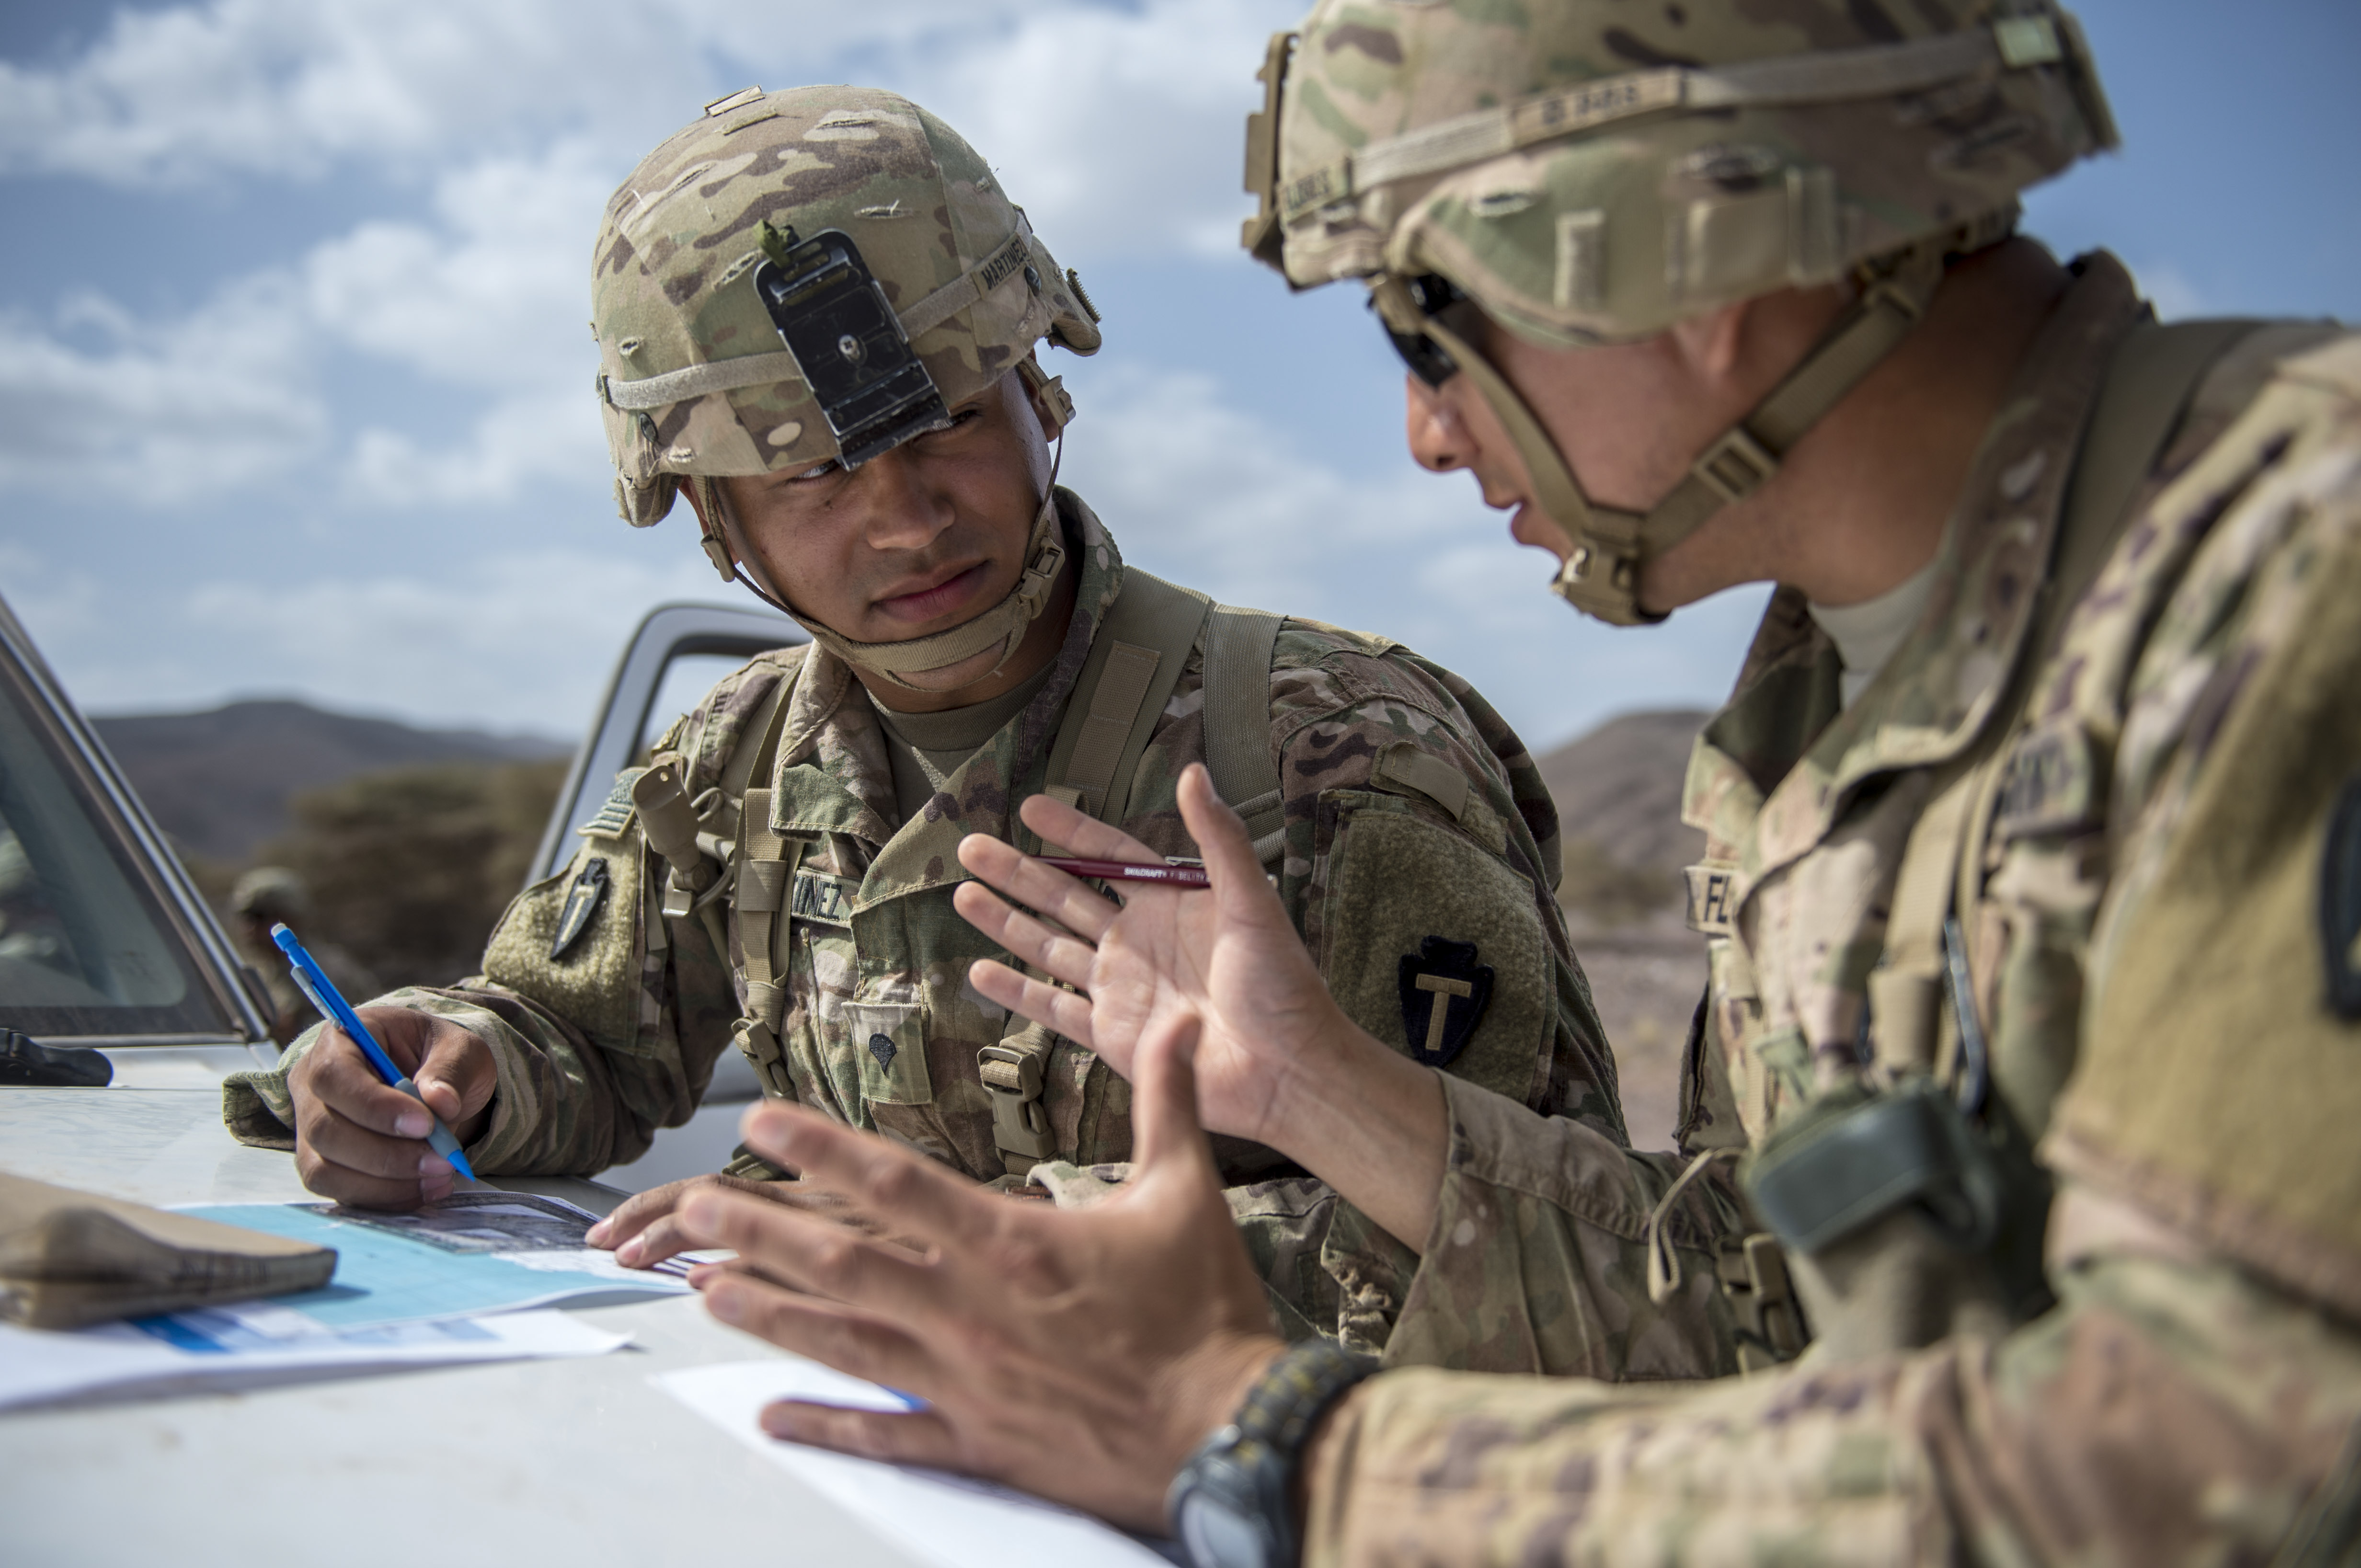 U.S. Army Soldiers assigned to Combined Joint Task Force - Horn of Africa discuss land navigation during training in preparation for an Expert Infantryman Badge evaluation at Arta Range, Djibouti, Jan. 25, 2018. After two weeks of training and five days of testing, 50 Soldiers completed the process to earn the coveted special skills badge that requires Soldiers to perform an Army Physical Fitness Test, day and night land navigation, a 12-mile forced march, and 30 individual tasks covering weapons, medical, and security patrol skills.  (U.S. Air Force photo by Staff Sgt. Timothy Moore)